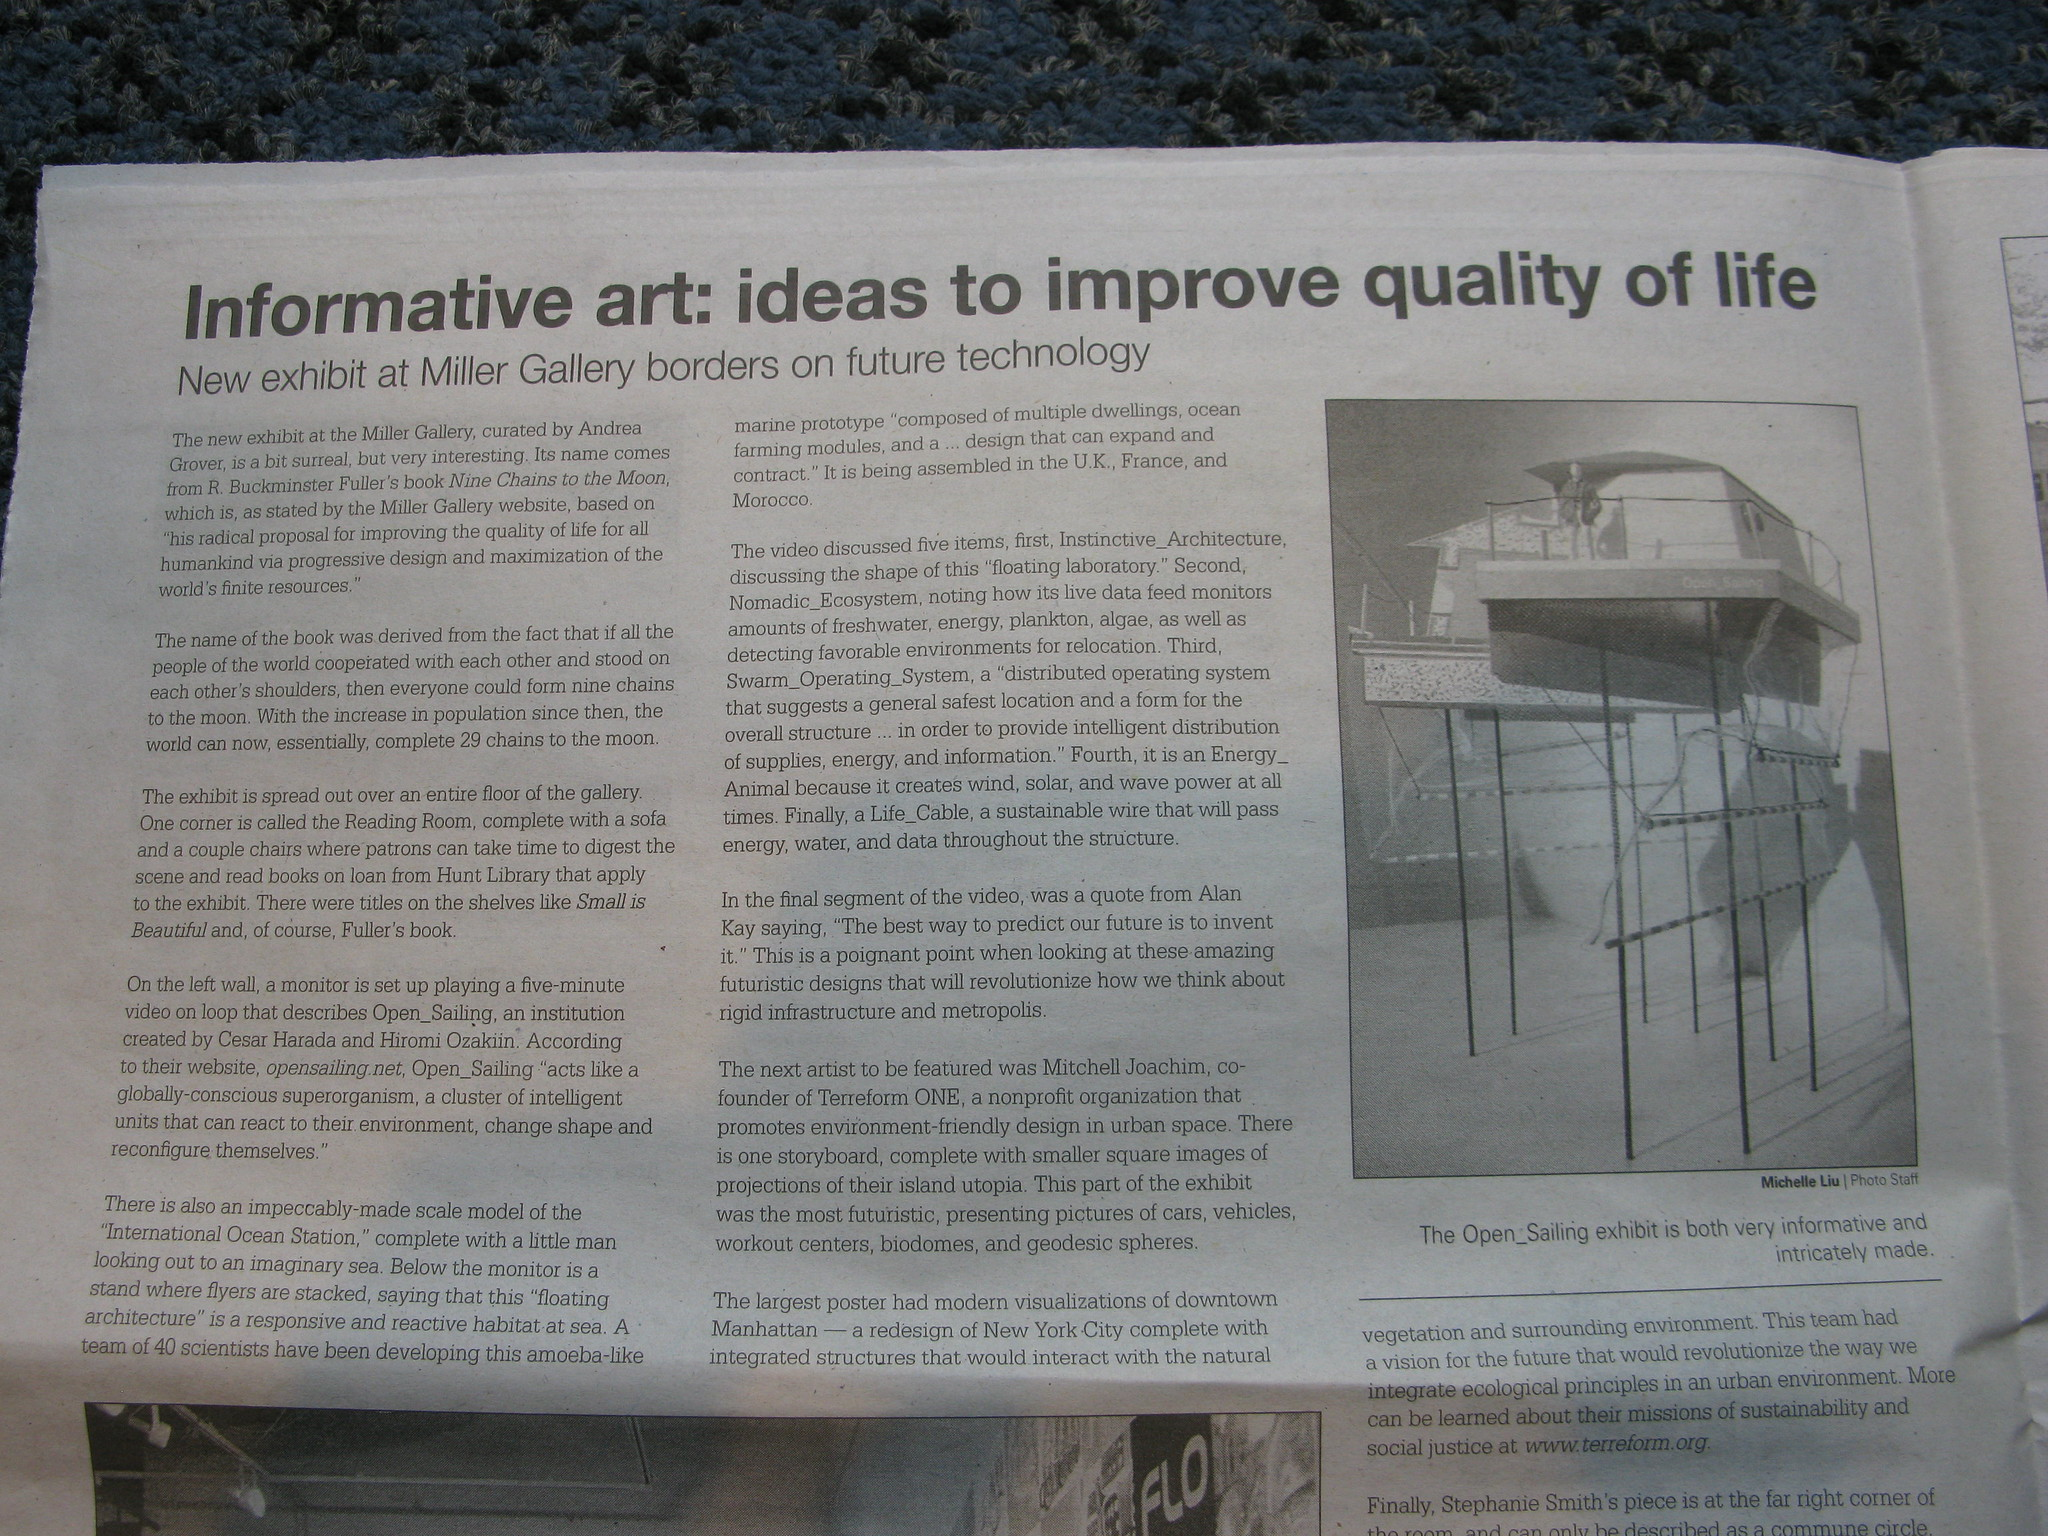 informative art: ideas to improve quality of life